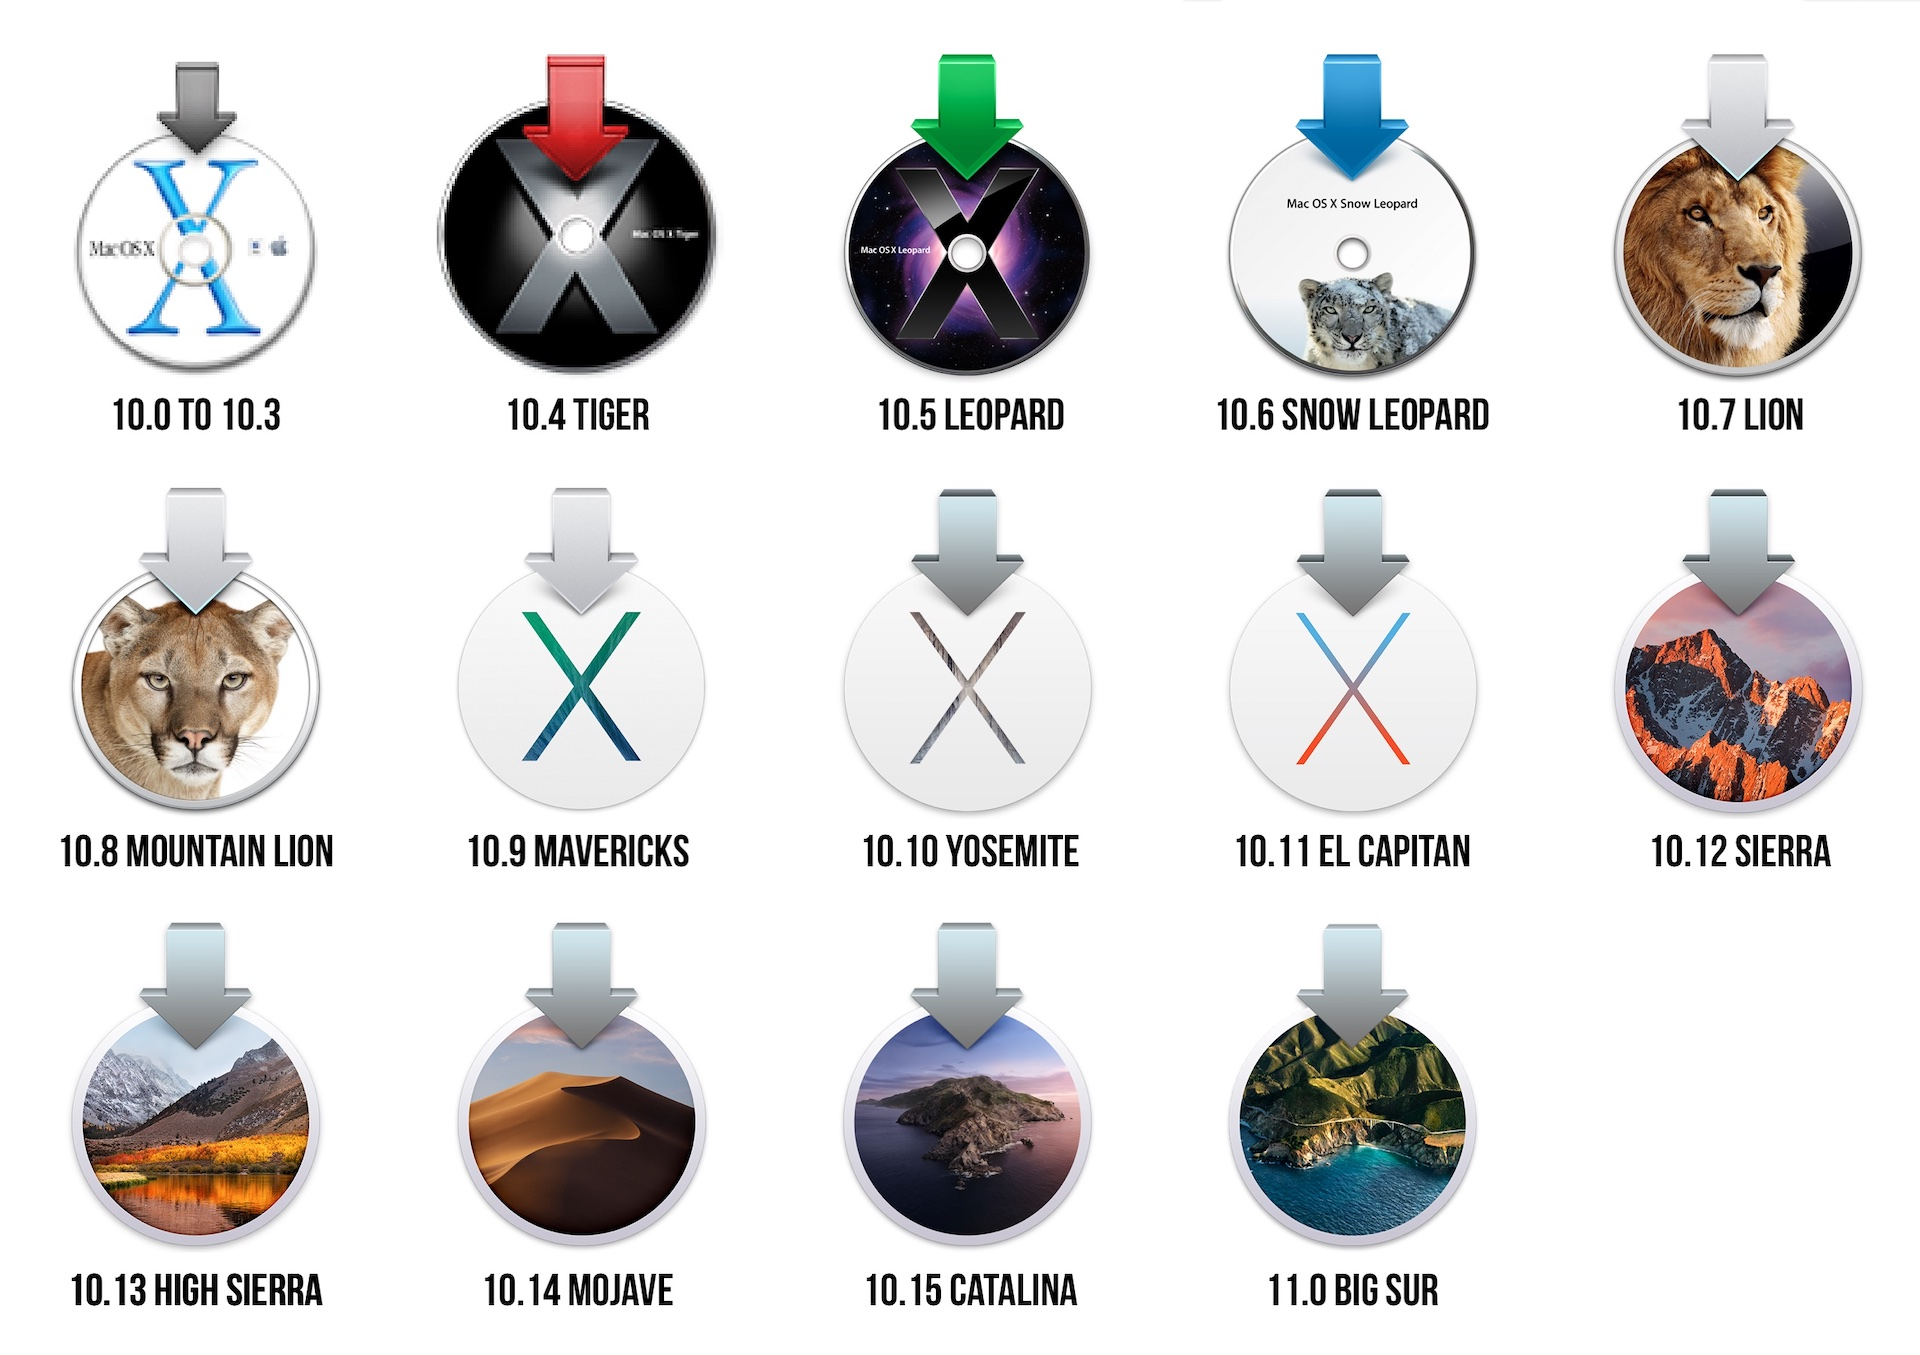 This year, we dug into the files on old Mac OS X install discs to find install icons going all the way back to version 10.0. Though design of the physical discs themselves changed in the early days of Mac OS X, the icons themselves didn't start changing until version 10.4.